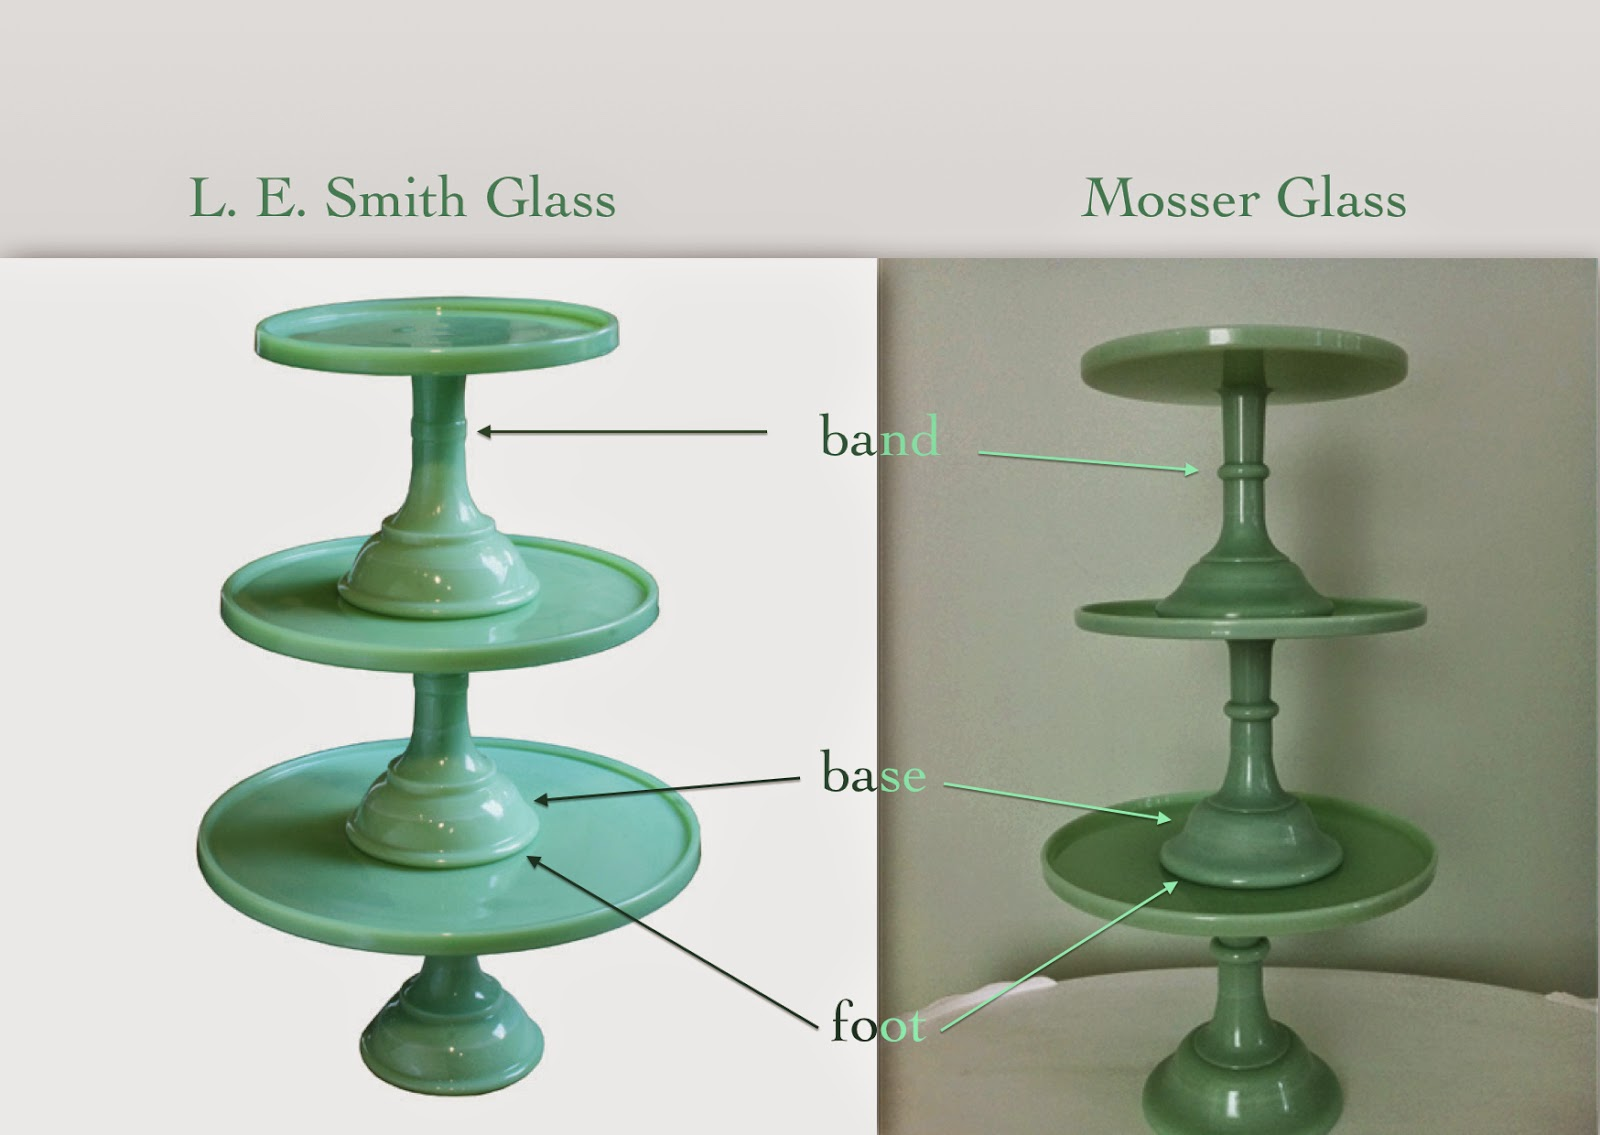 I think we can agree that the cake plates themselves meaning the flat rounds where cakes sit are pretty much the same on both the L.E. Smith and the ... & Good Things by David: Dear David: Mosser vs. L.E. Smith Cake Stands